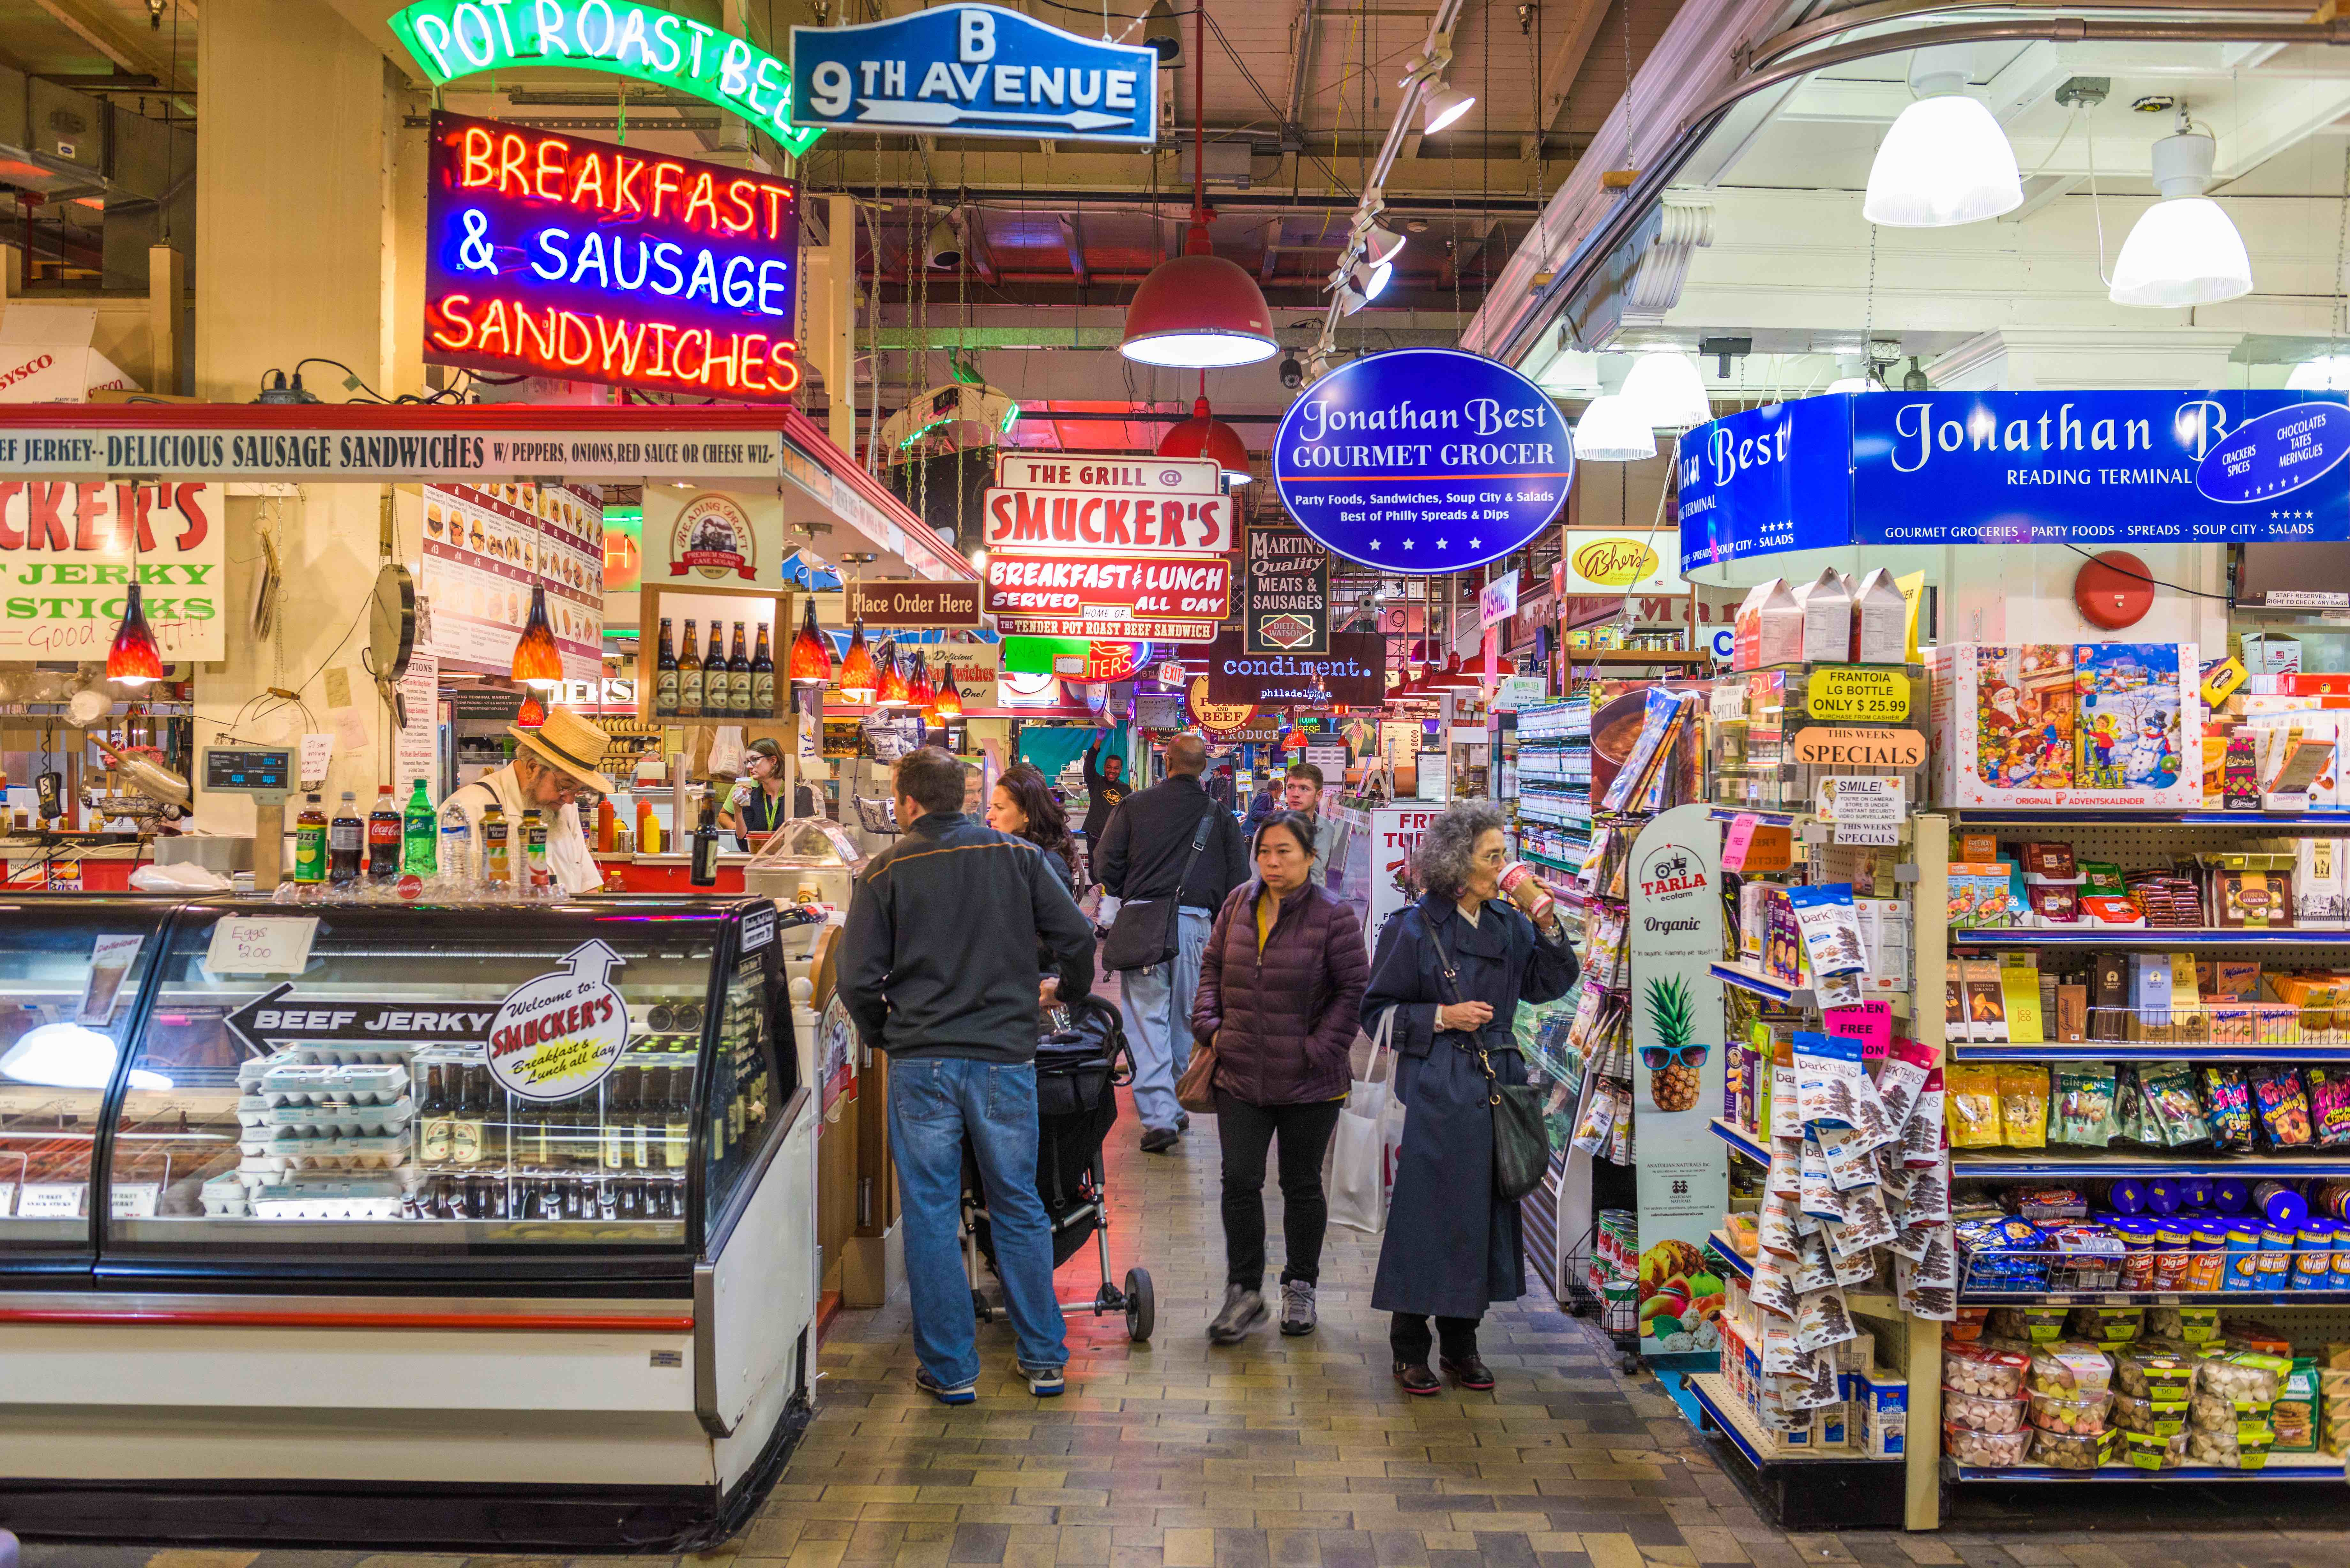 food market with grocery stalls and neon signs